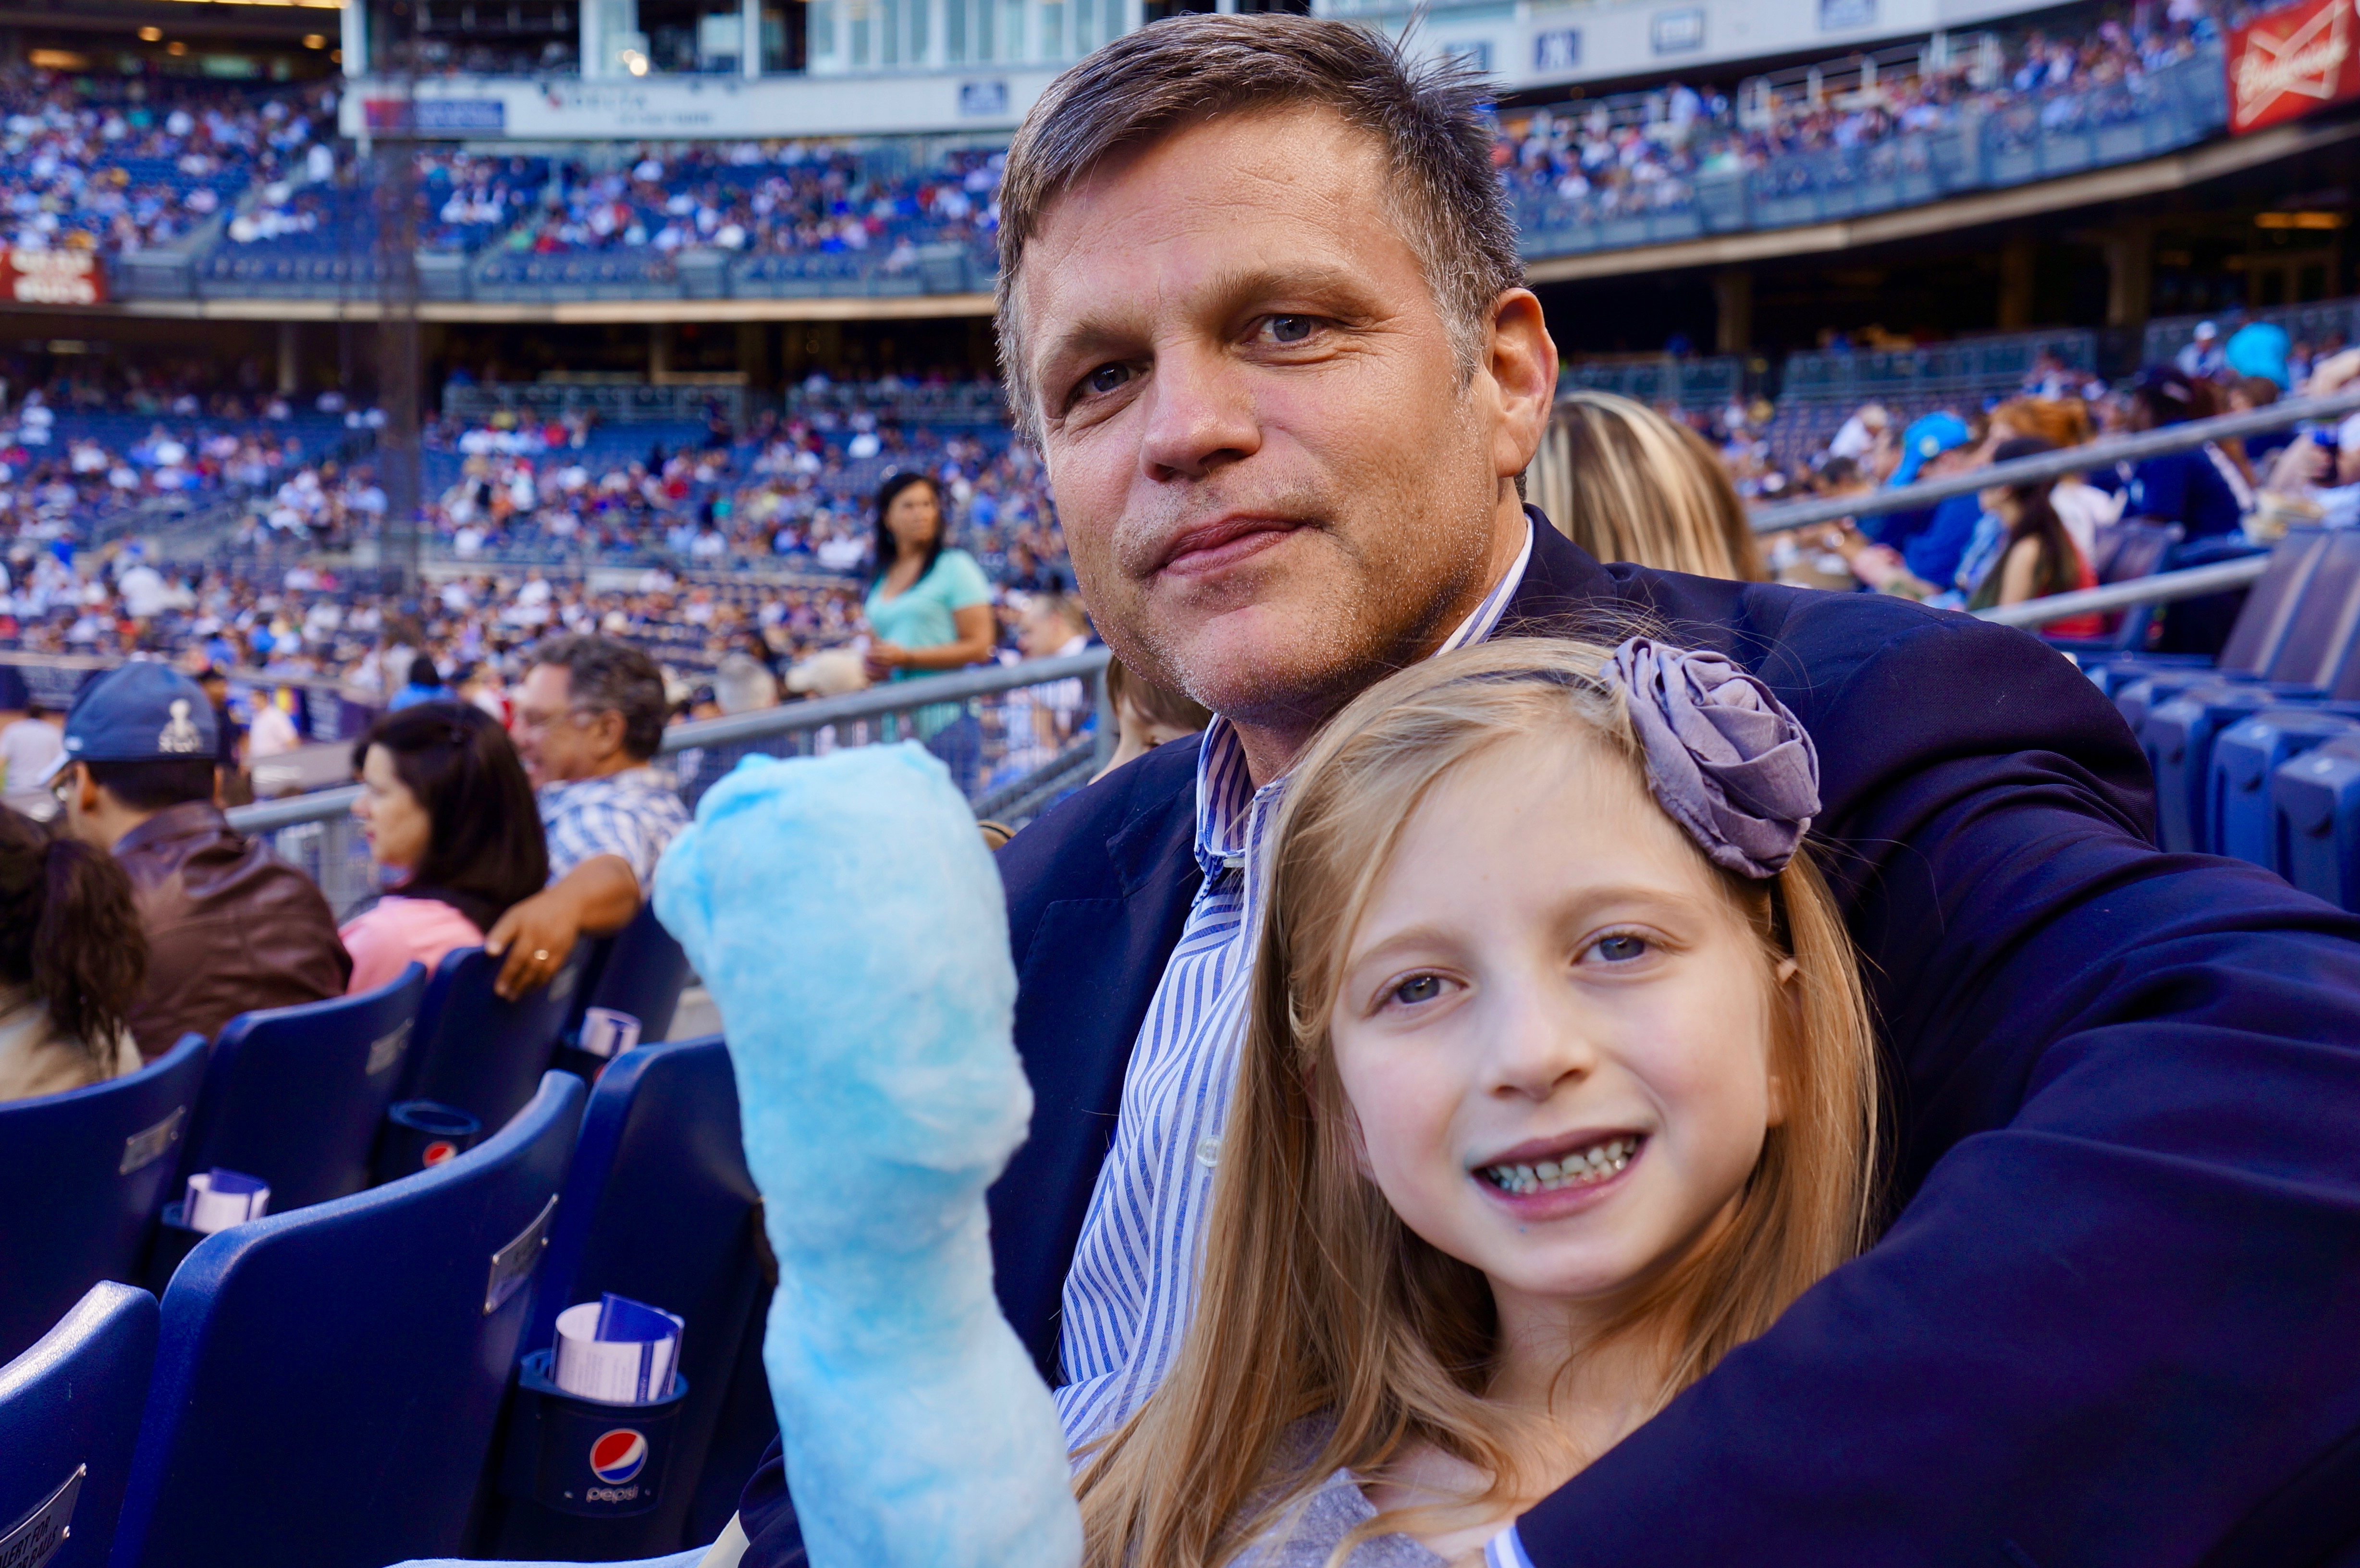 2013 Douglas Brinkley and daughter Cassady